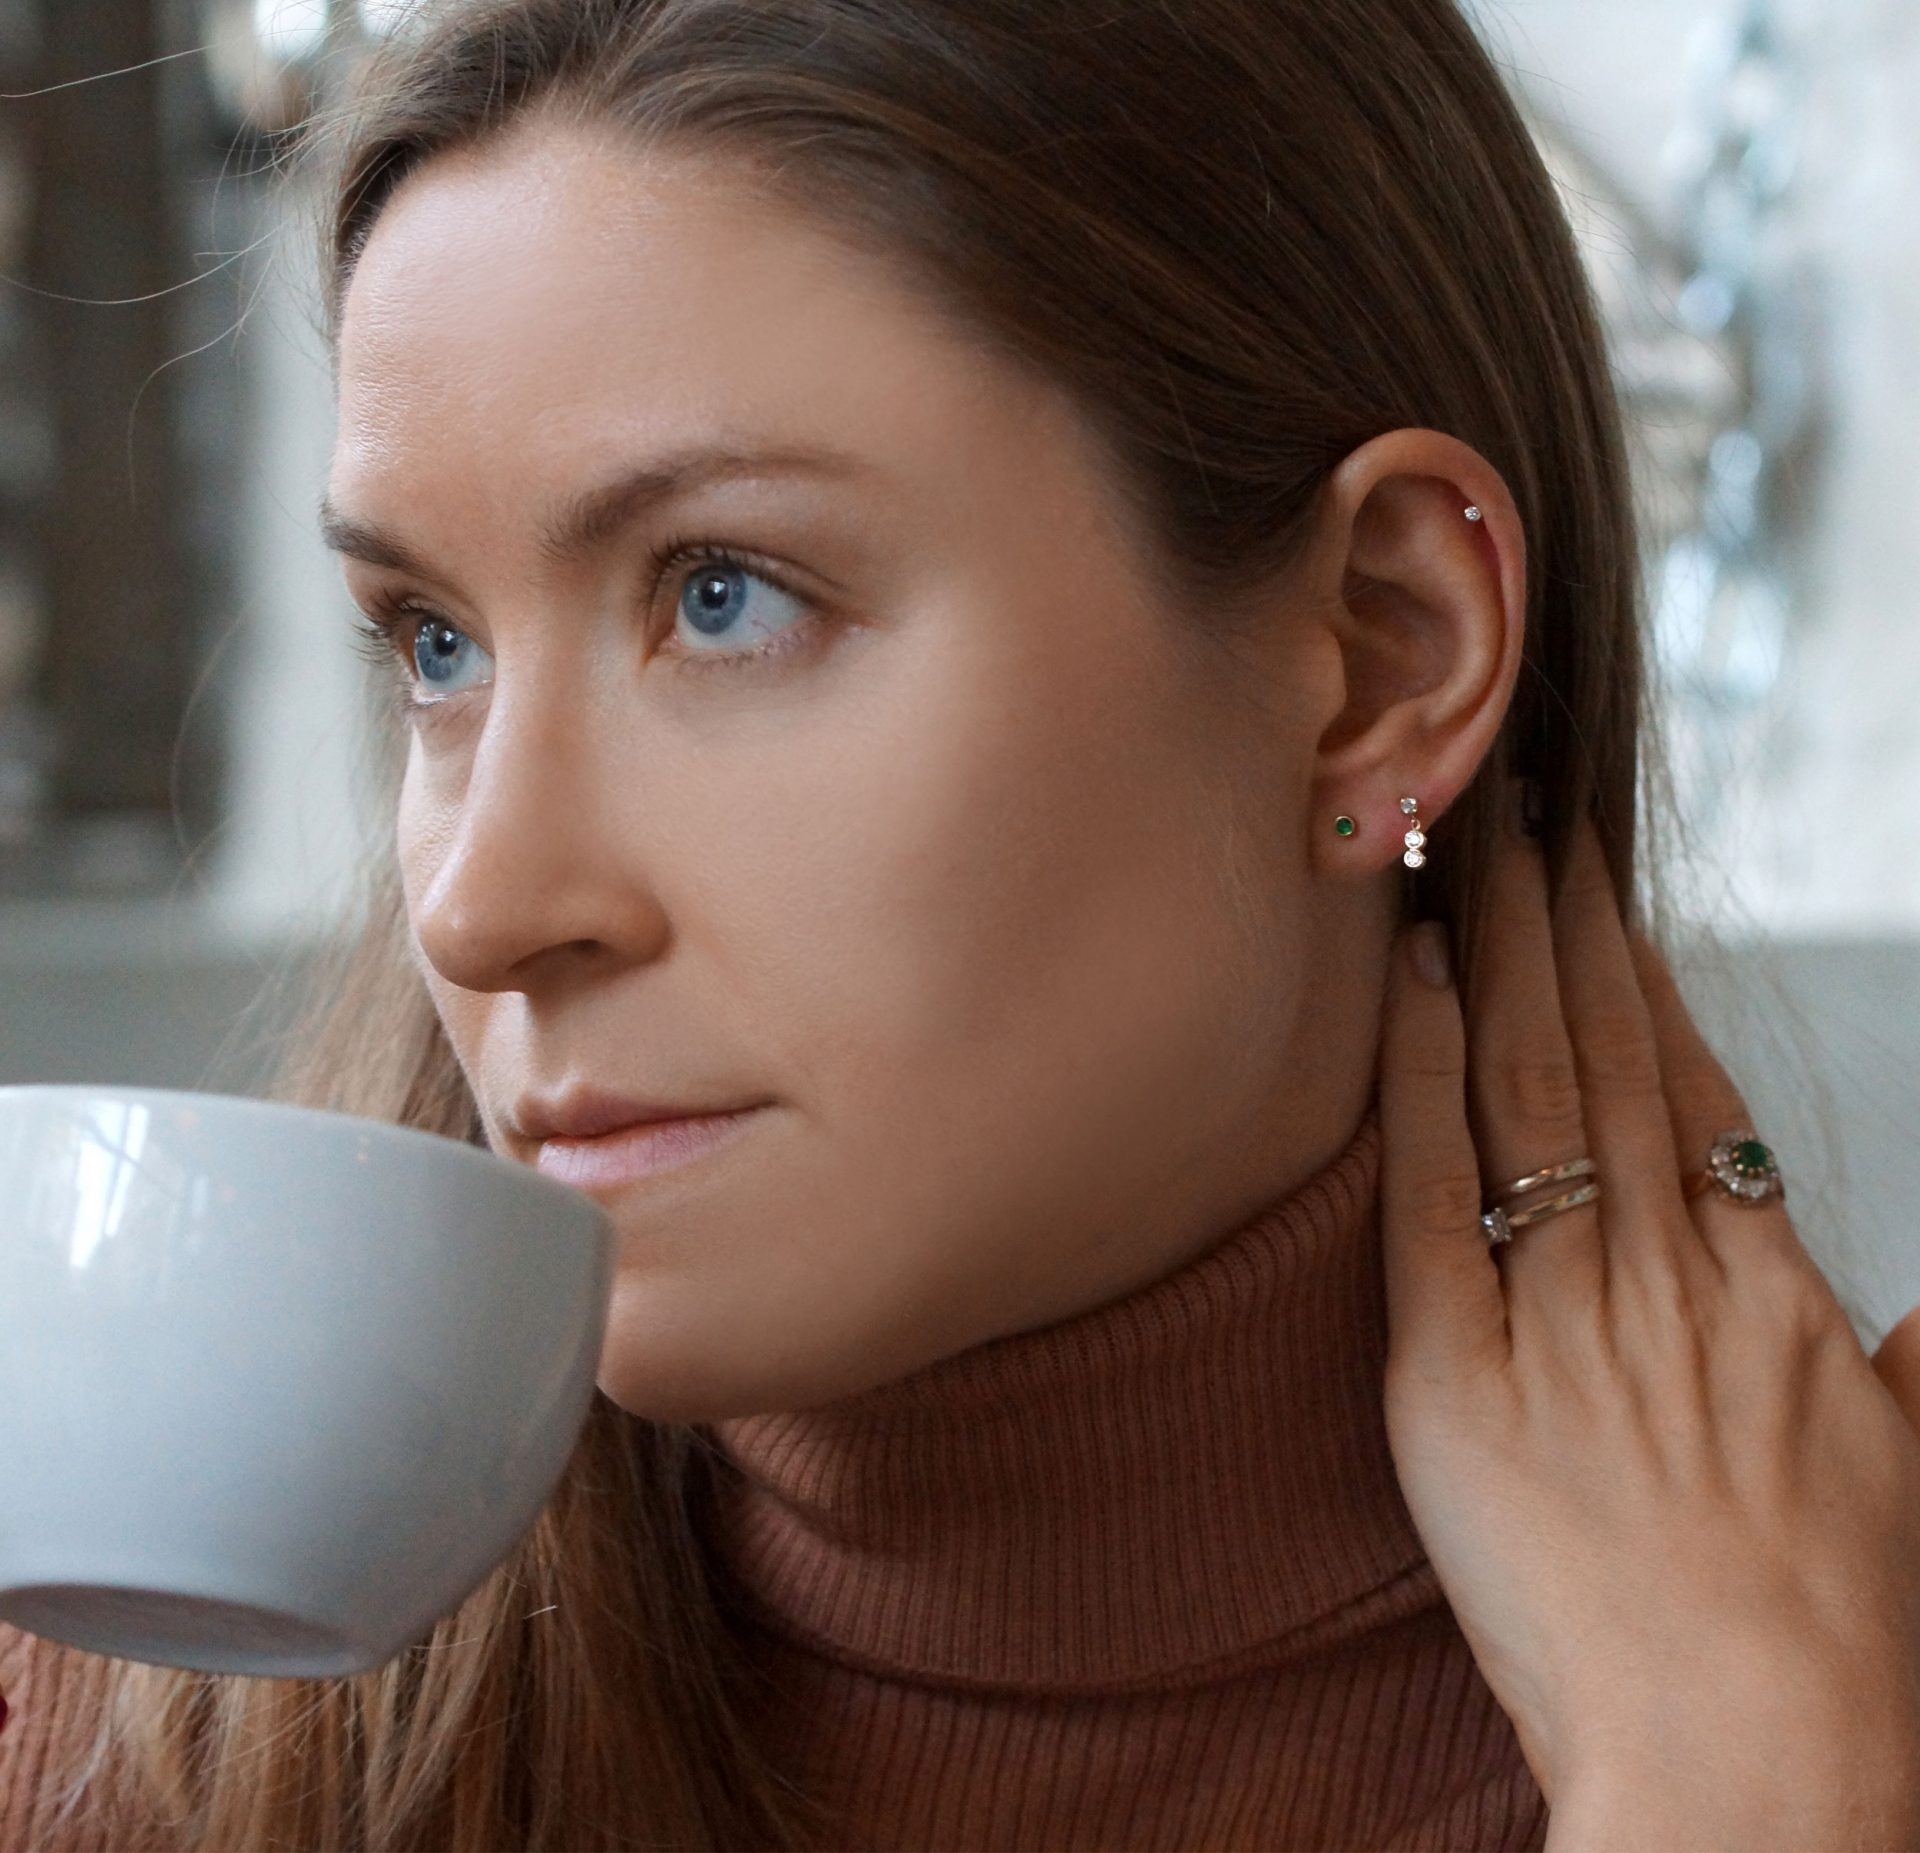 high neck sweater it's nearly impossible to wear a necklace The perfect pieces of jewelry to wear with this type of sweater is a pair of multiple piercing earrings combination from luxury british brand Lena Cohen